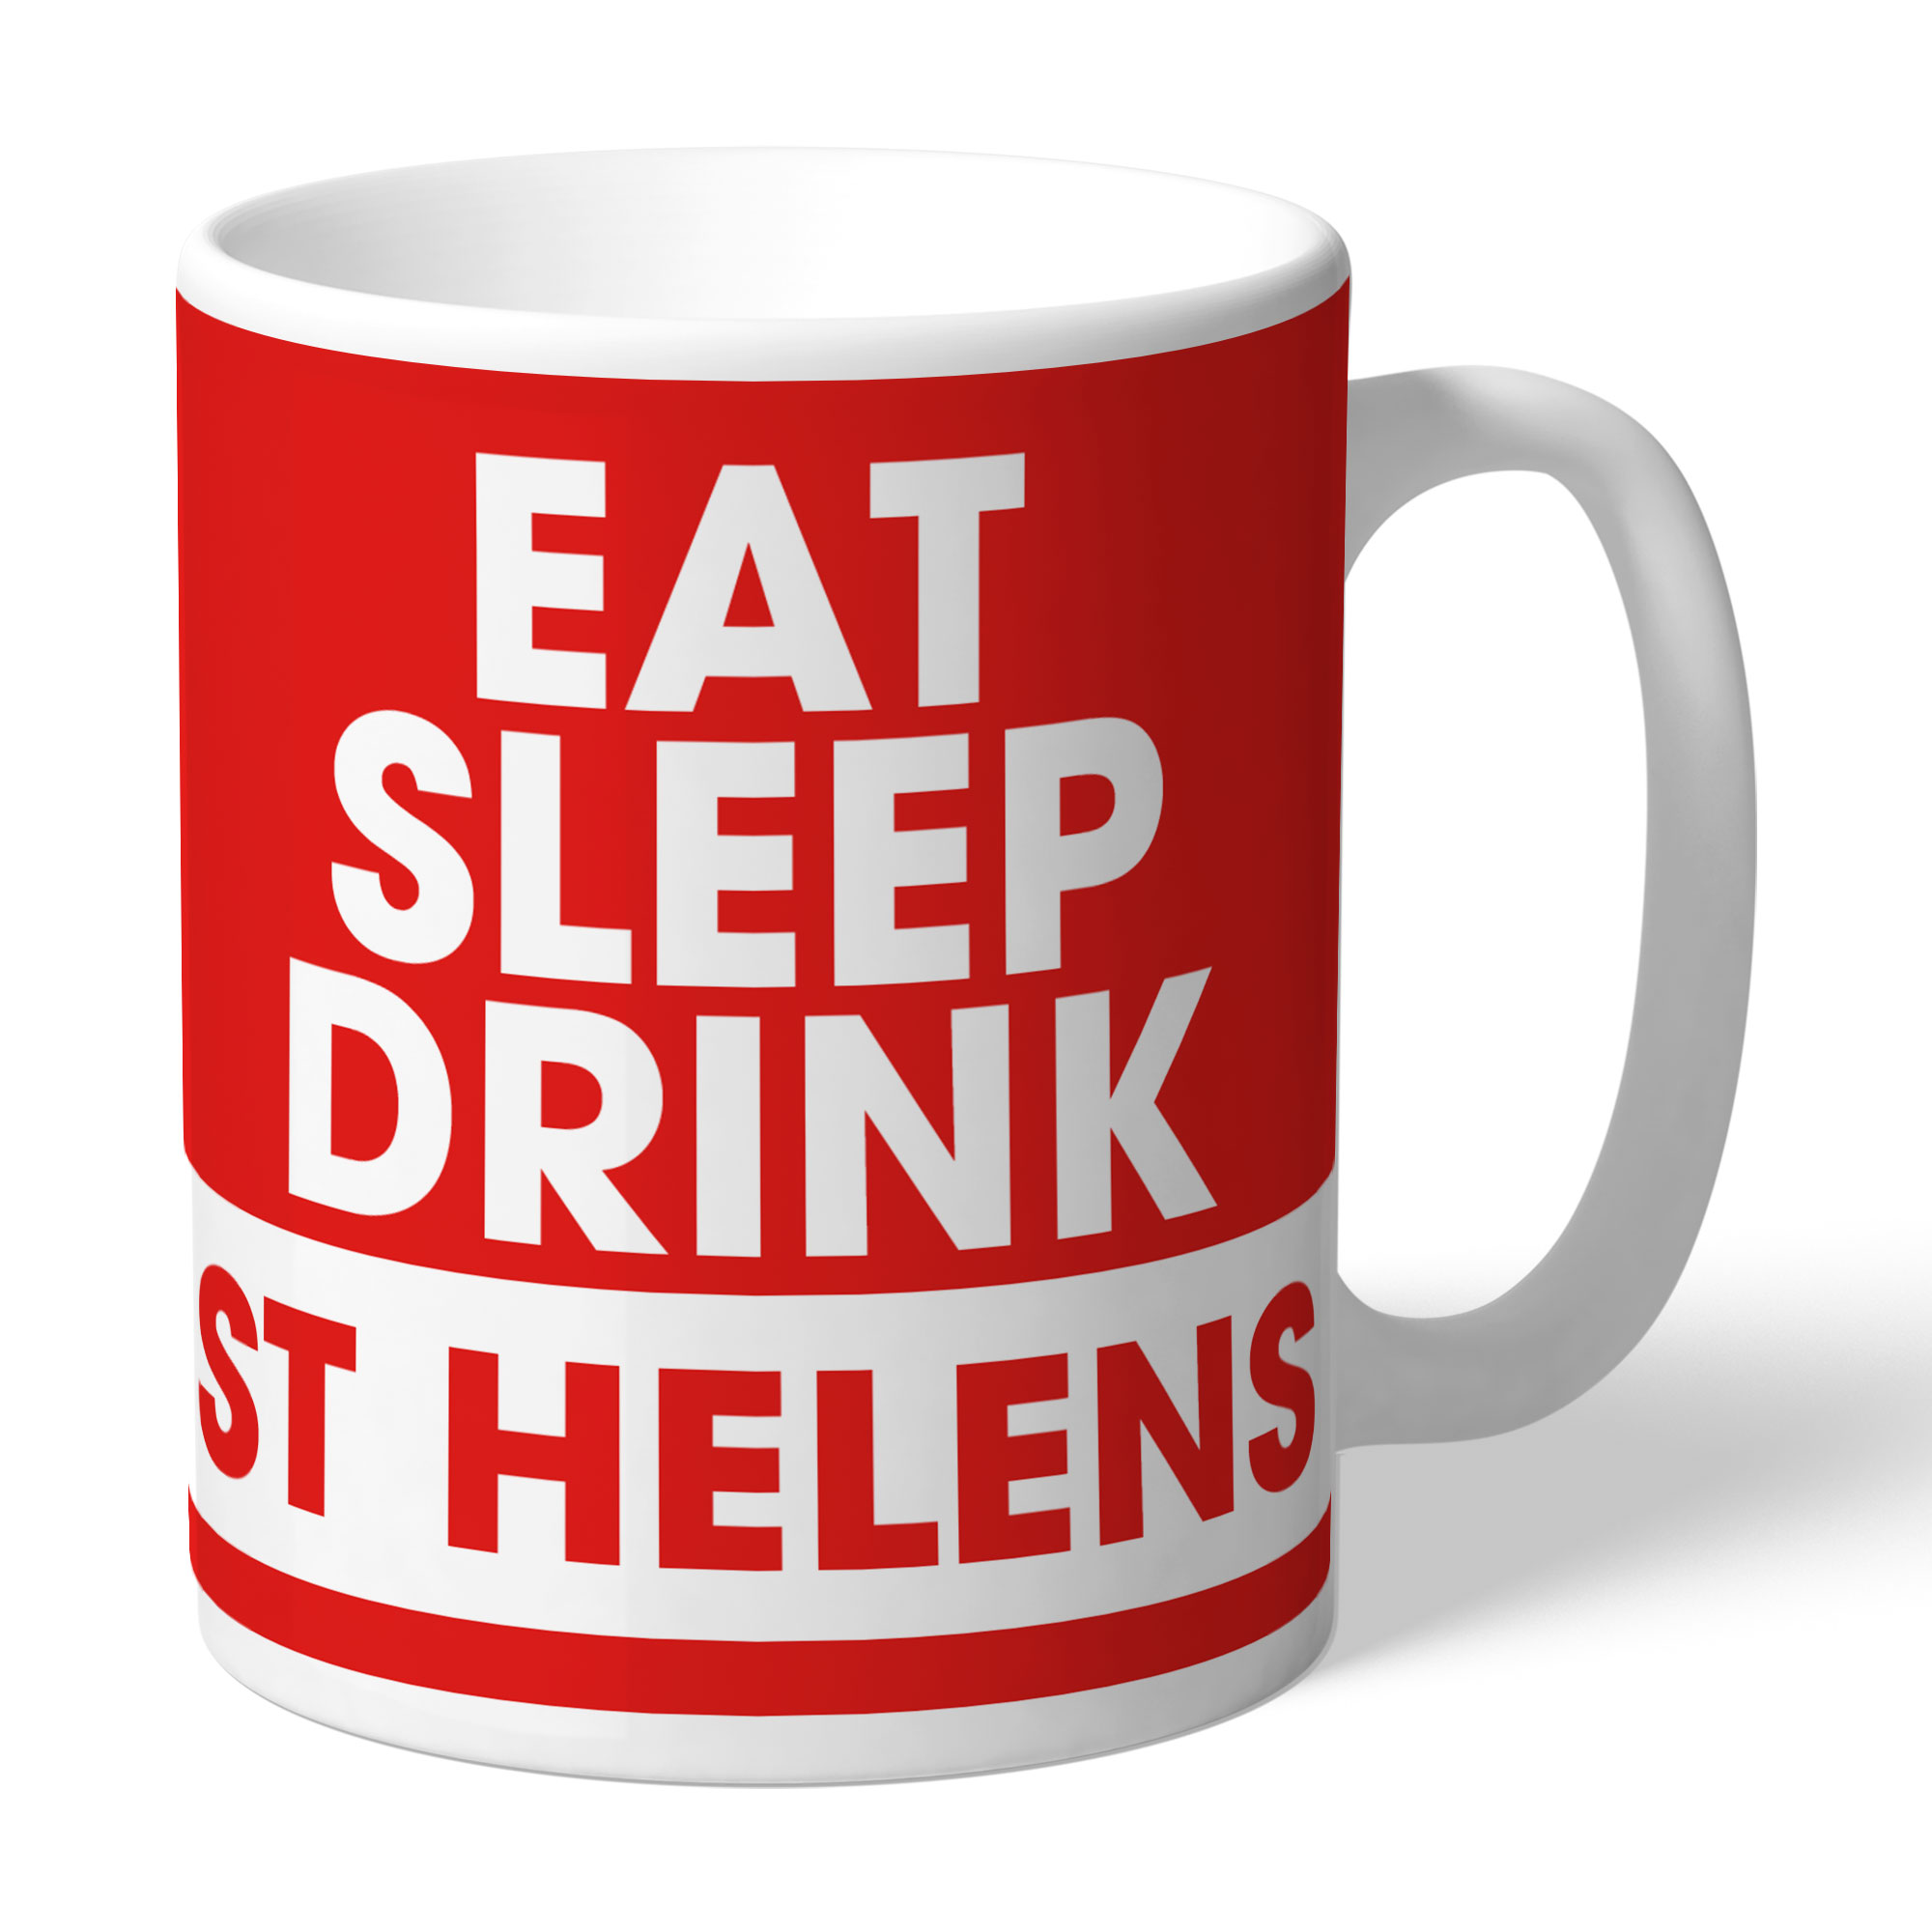 St Helens Eat Sleep Drink Mug